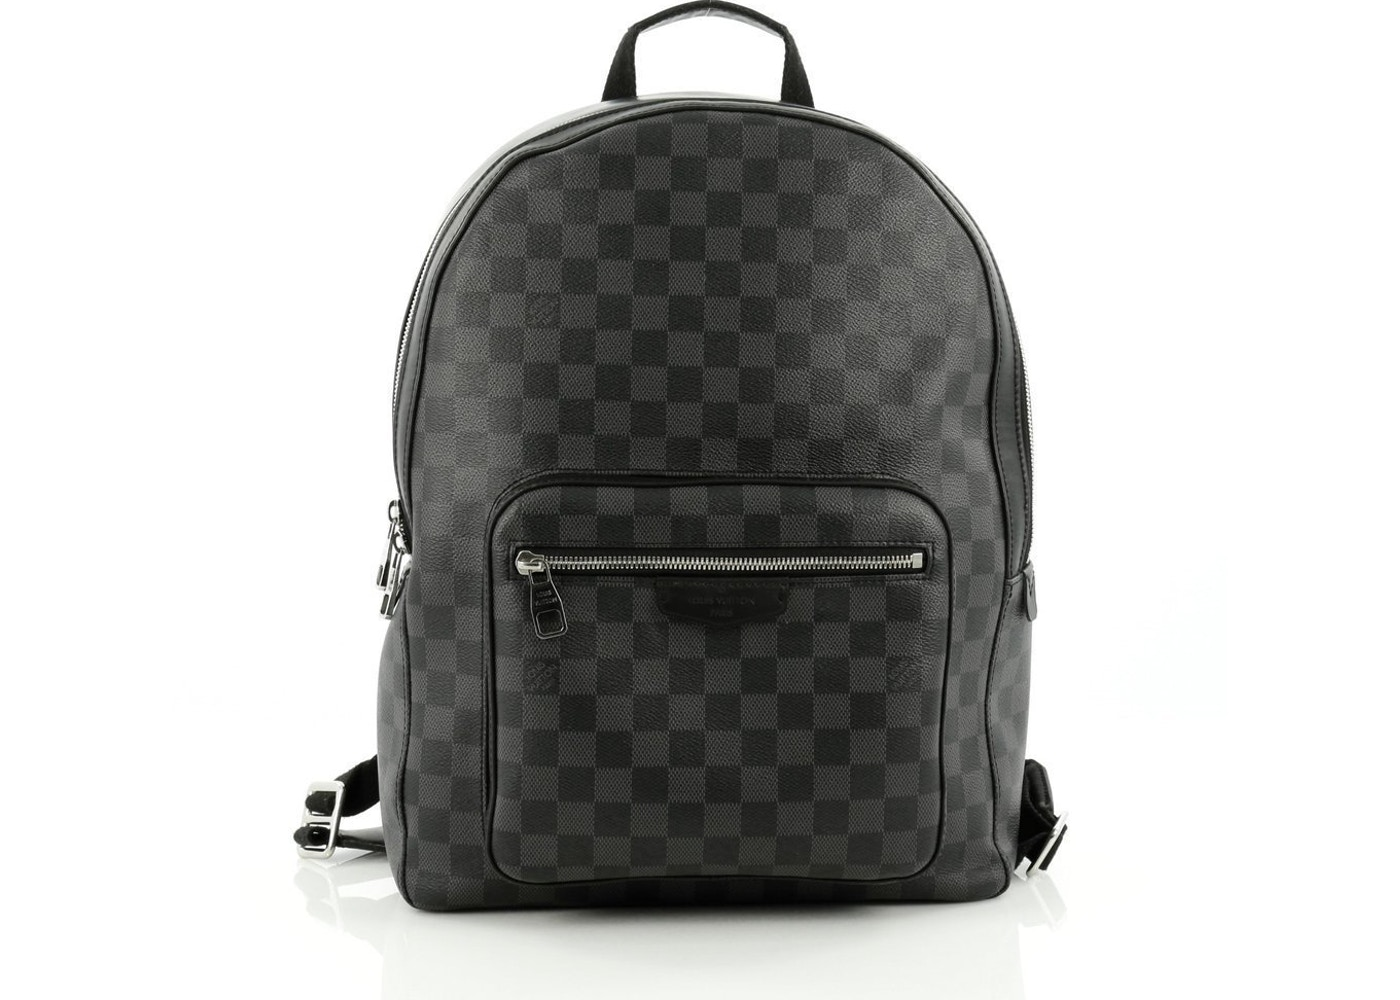 b3bfd120e1f8 Louis Vuitton Josh Damier Graphite Black. Damier Graphite Black